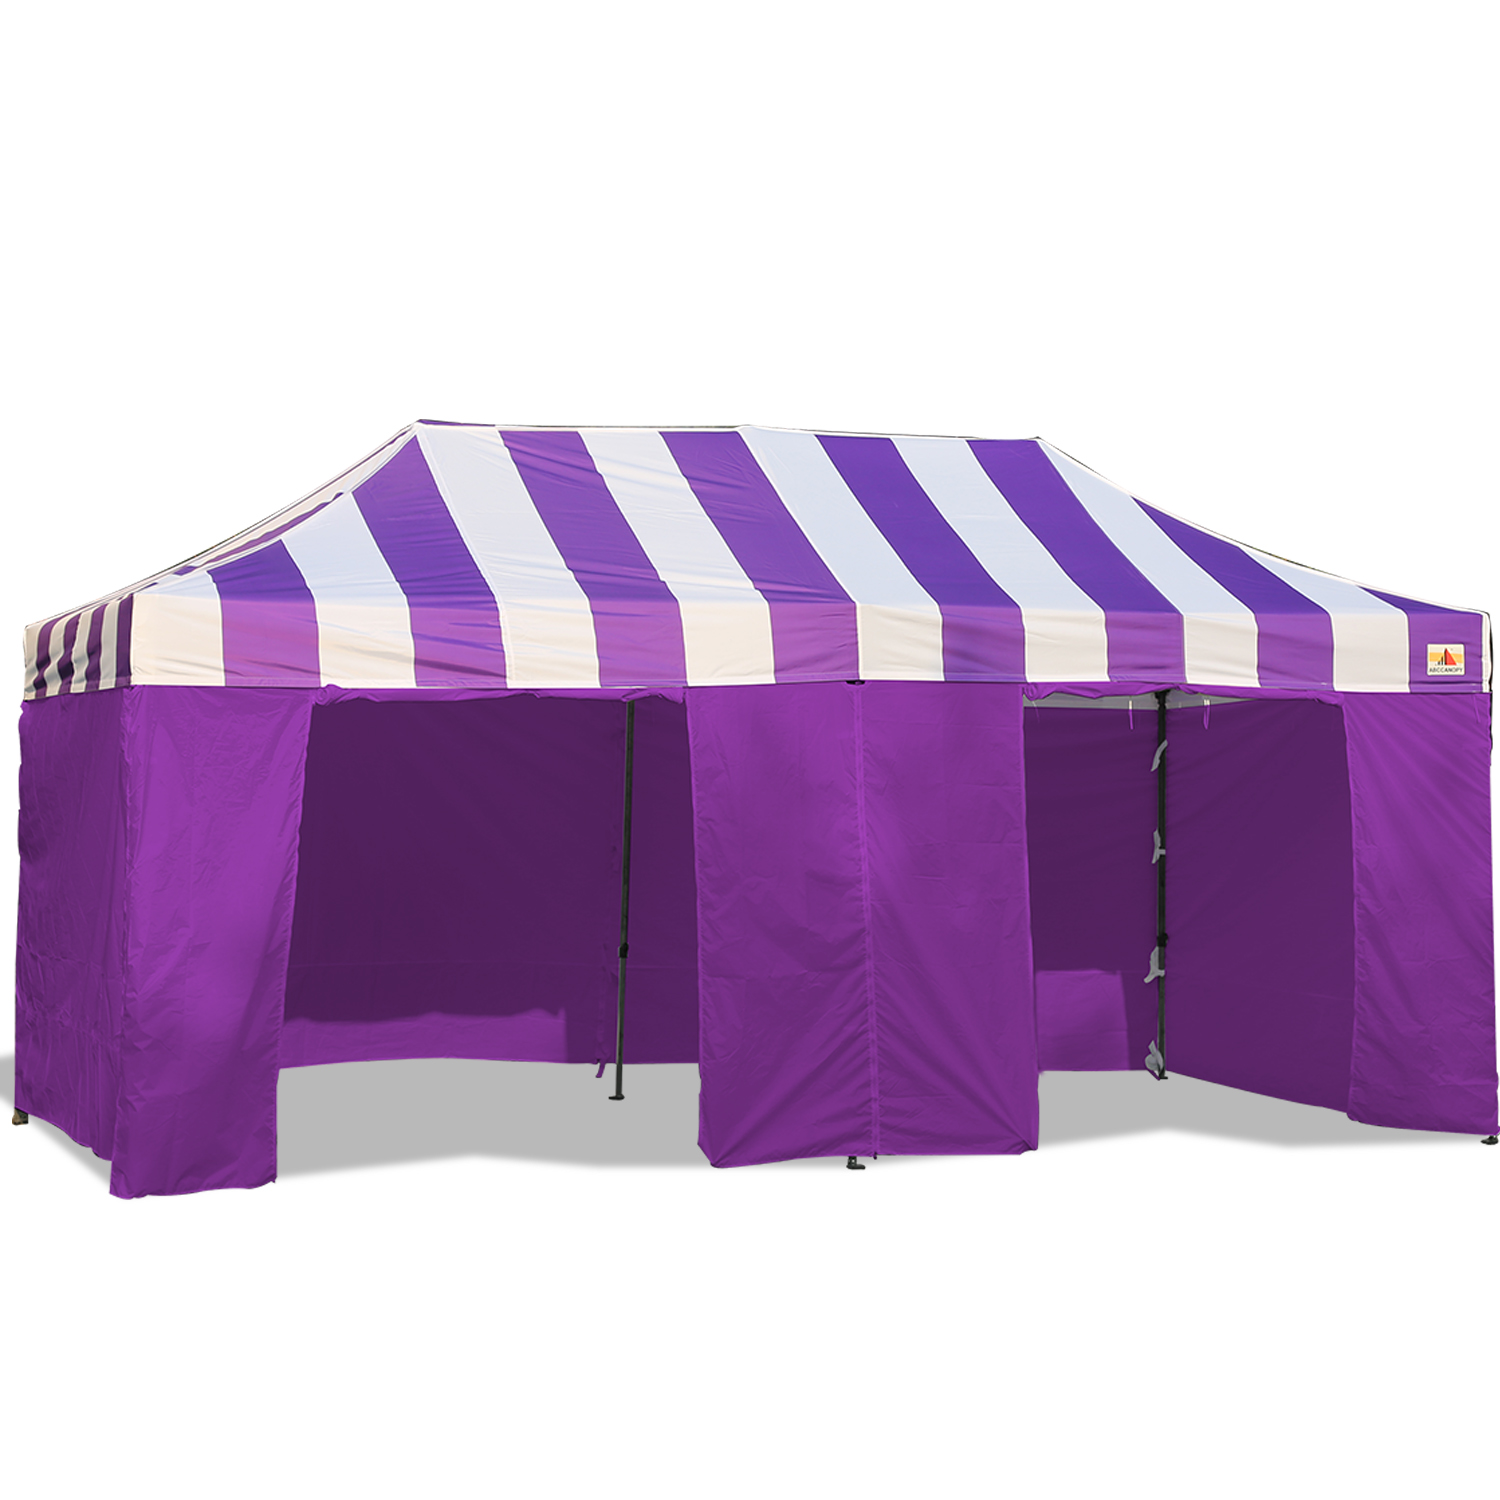 Abccanopy Carnival Canopy 10x20 Purple With Purple Walls